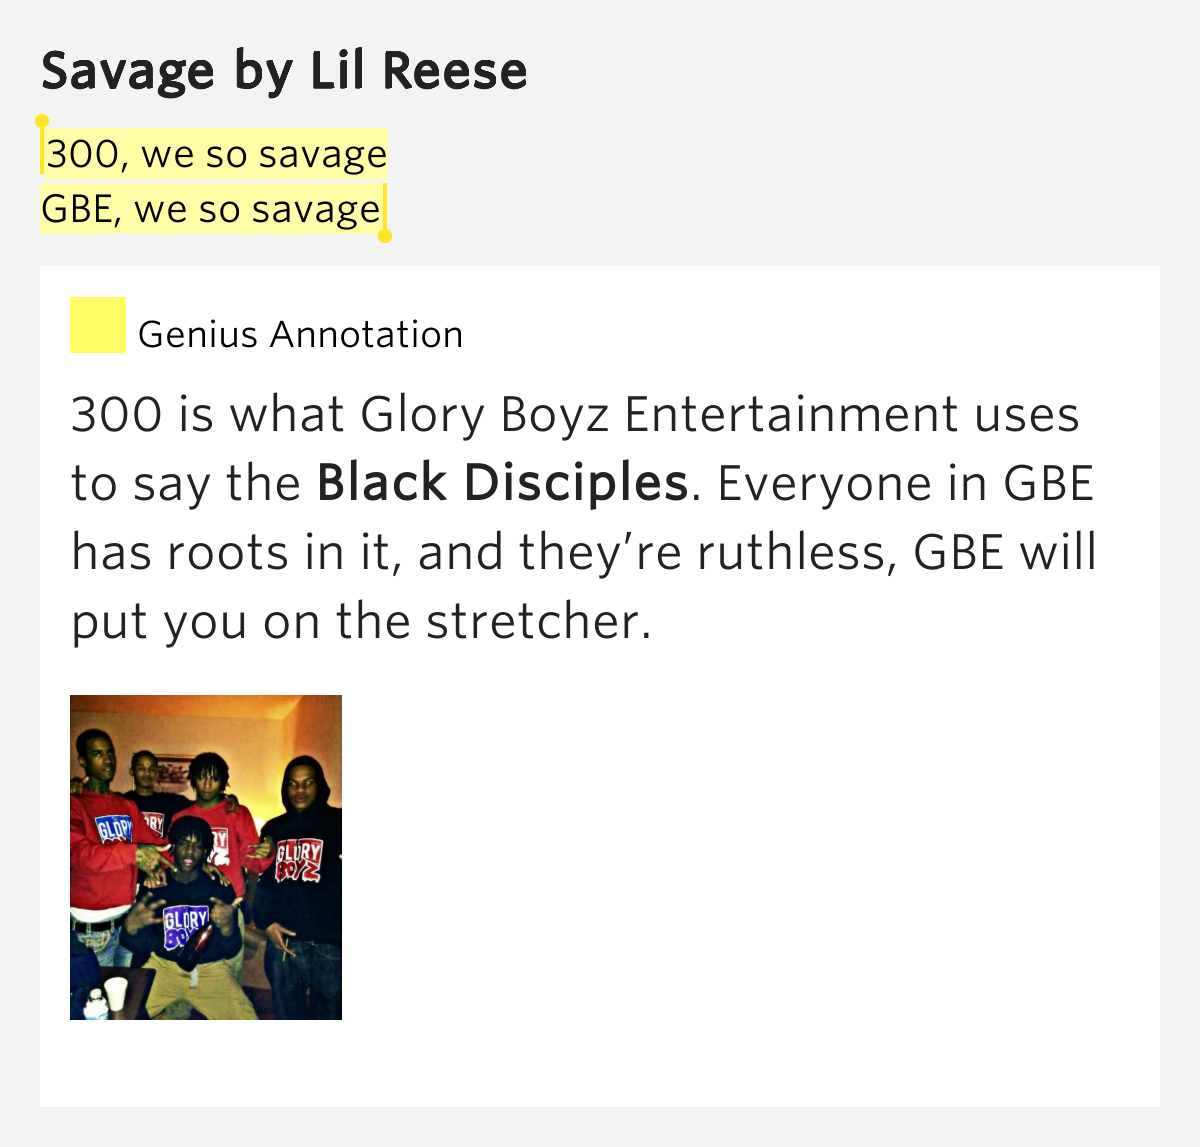 Kanye West Savage Quotes: 300, We So Savage / GBE, We So Savage